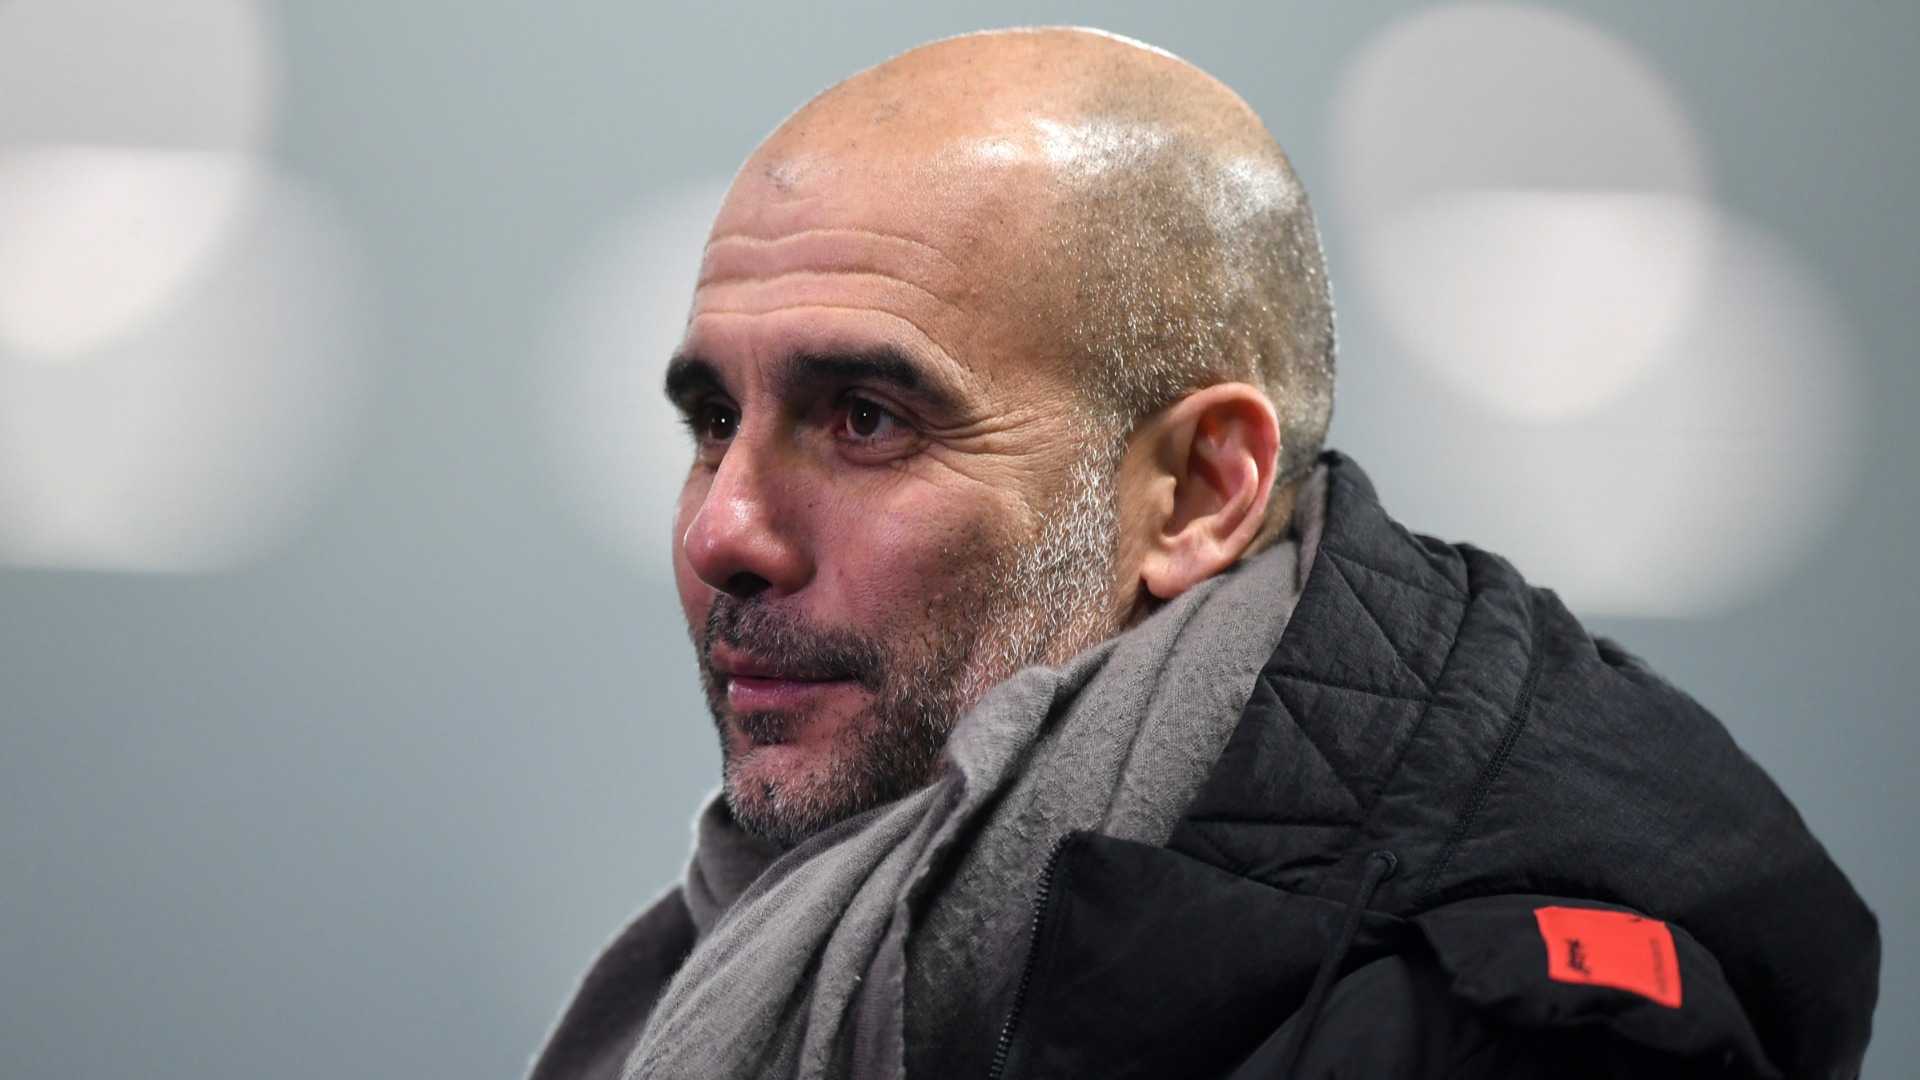 Table-topping City staying calm in 'marathon' season, says Guardiola